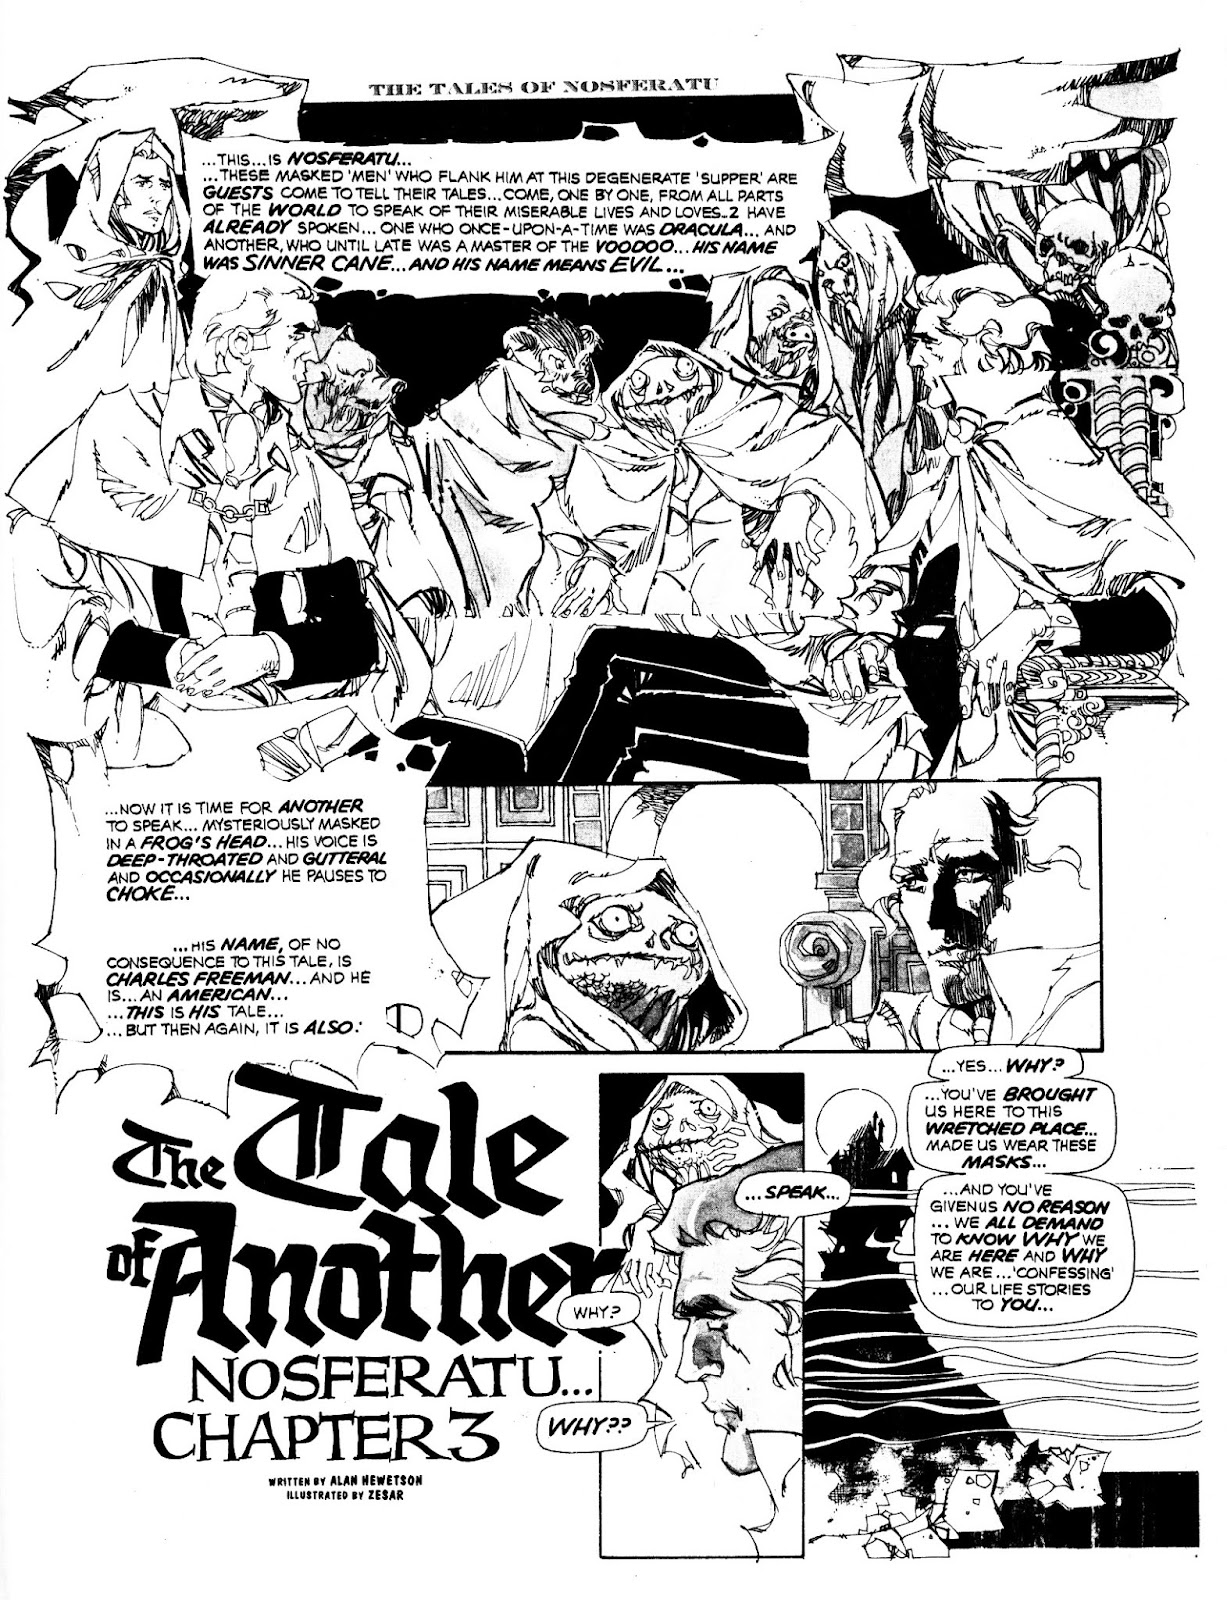 Scream (1973) issue 3 - Page 57